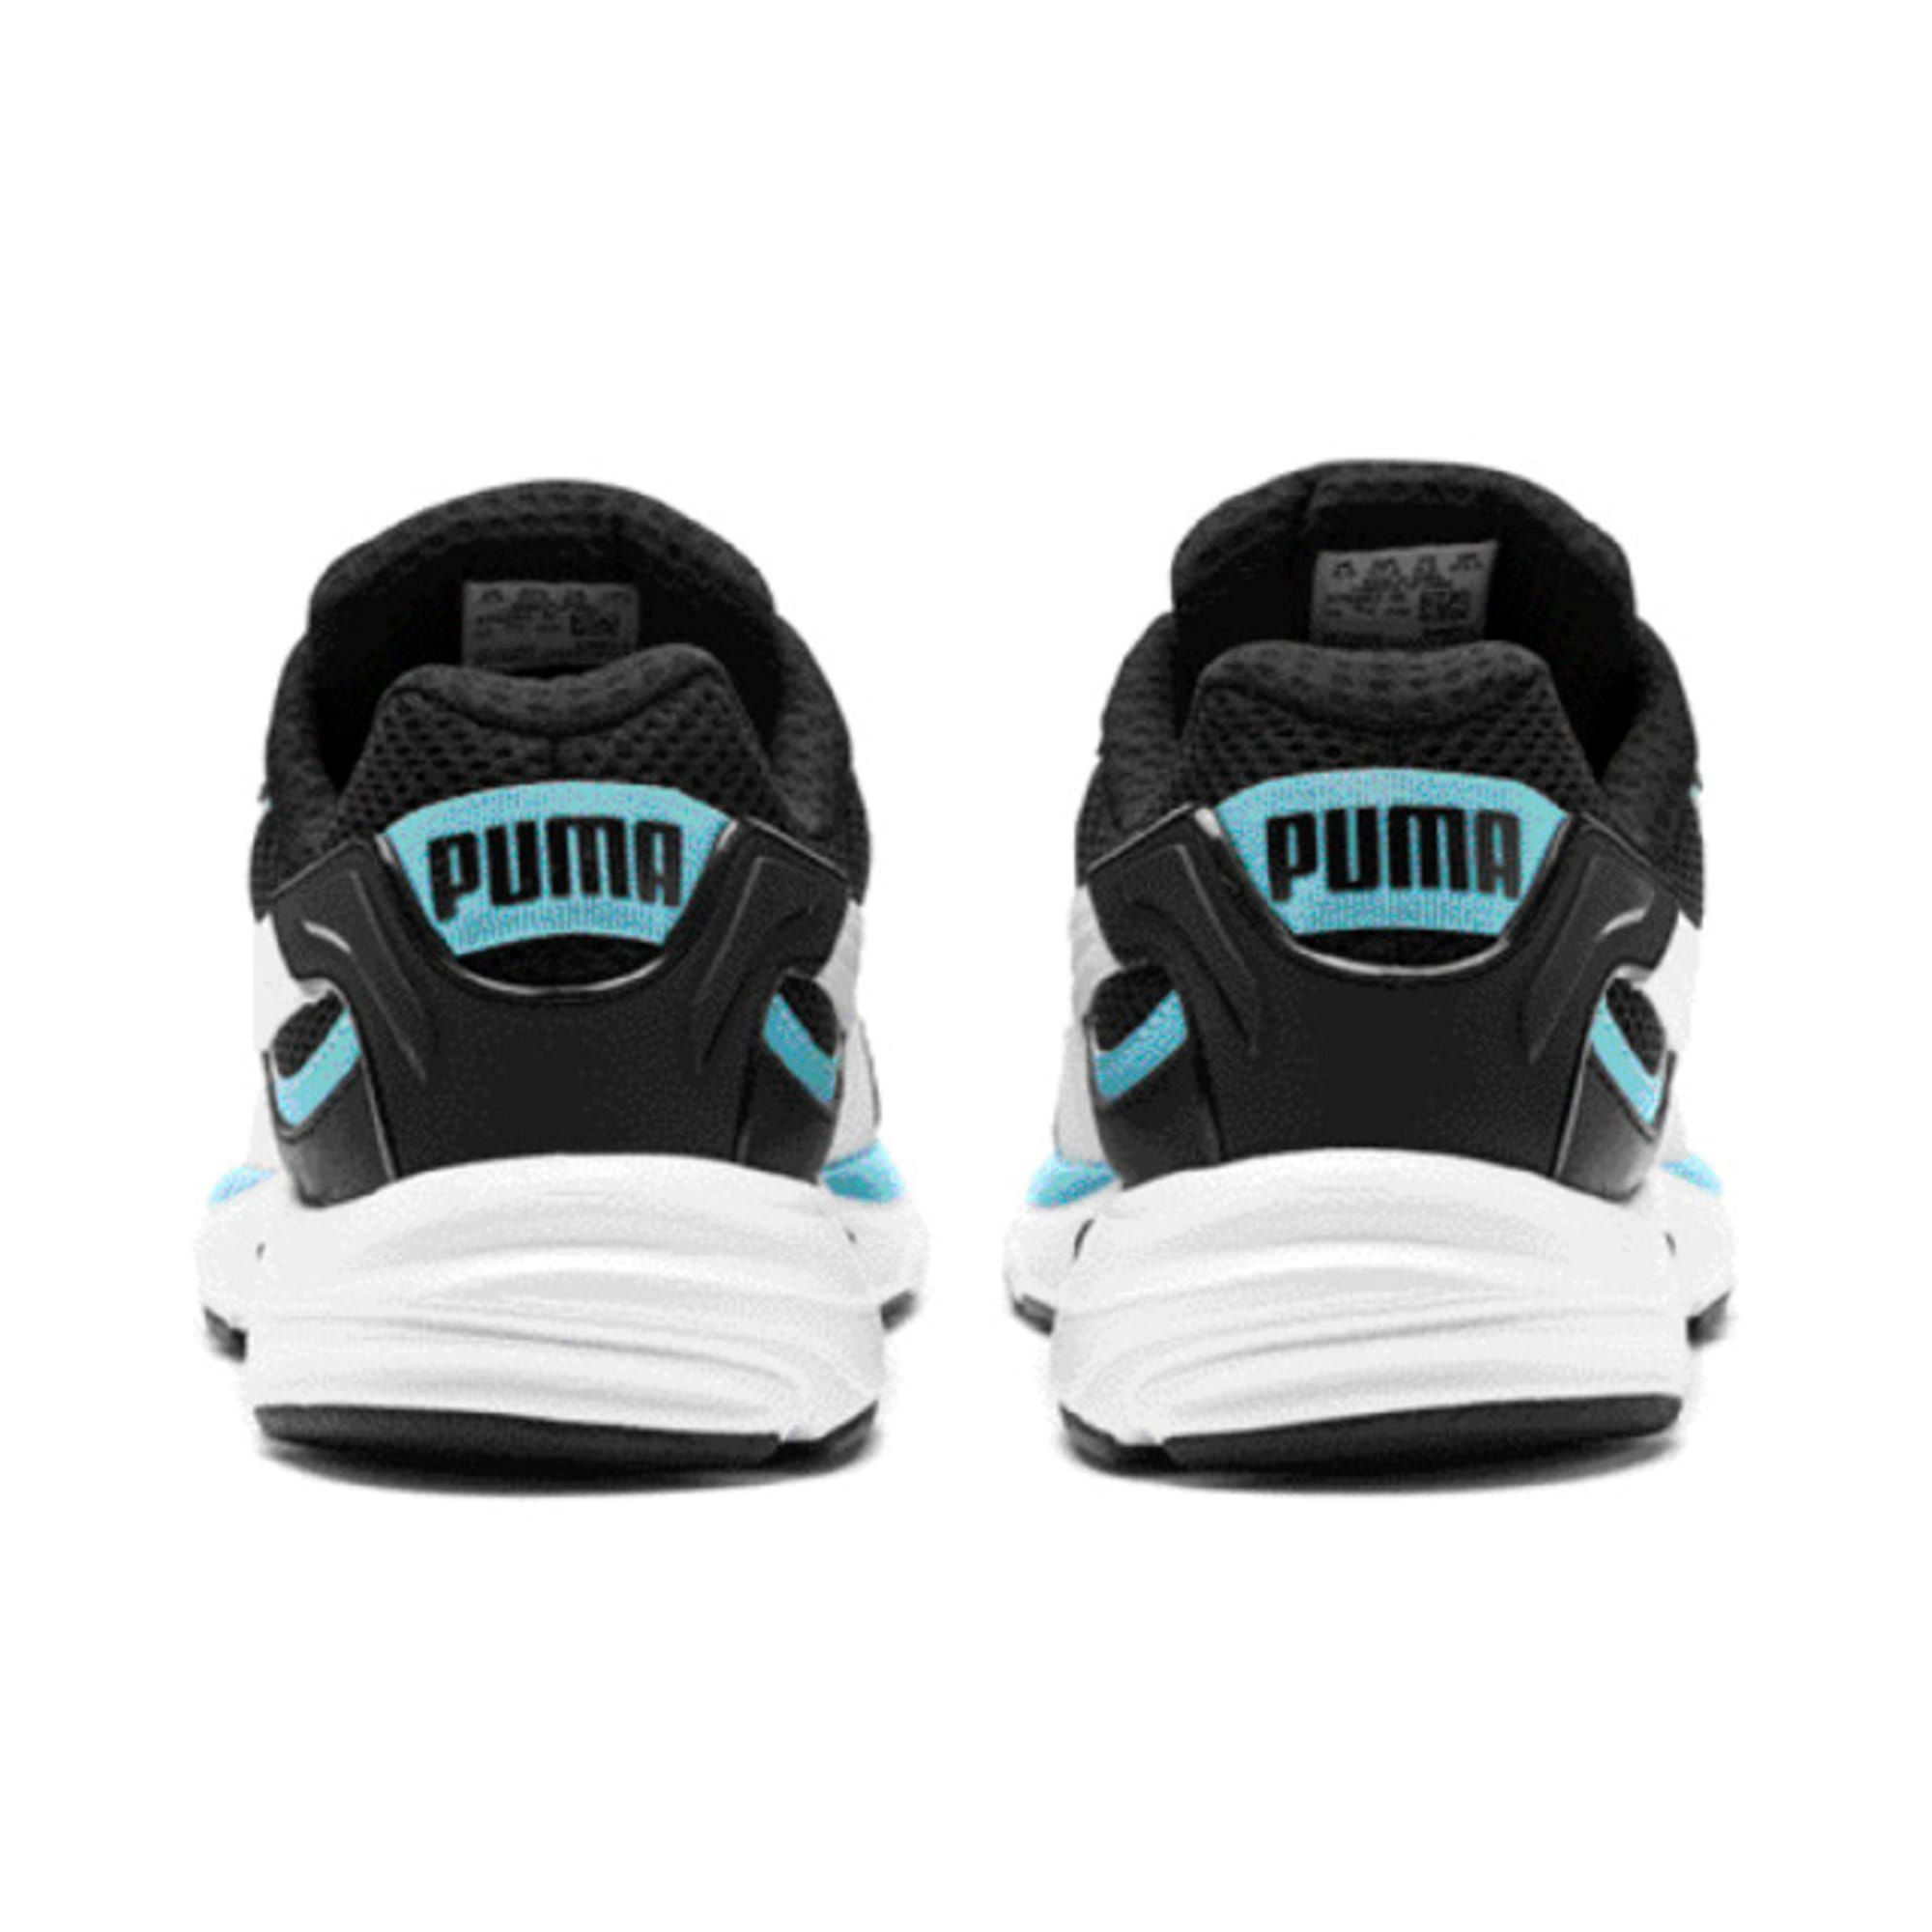 Thumbnail 6 of Axis Plus 90s Trainers, Puma Black-White-Milky Blue, medium-IND